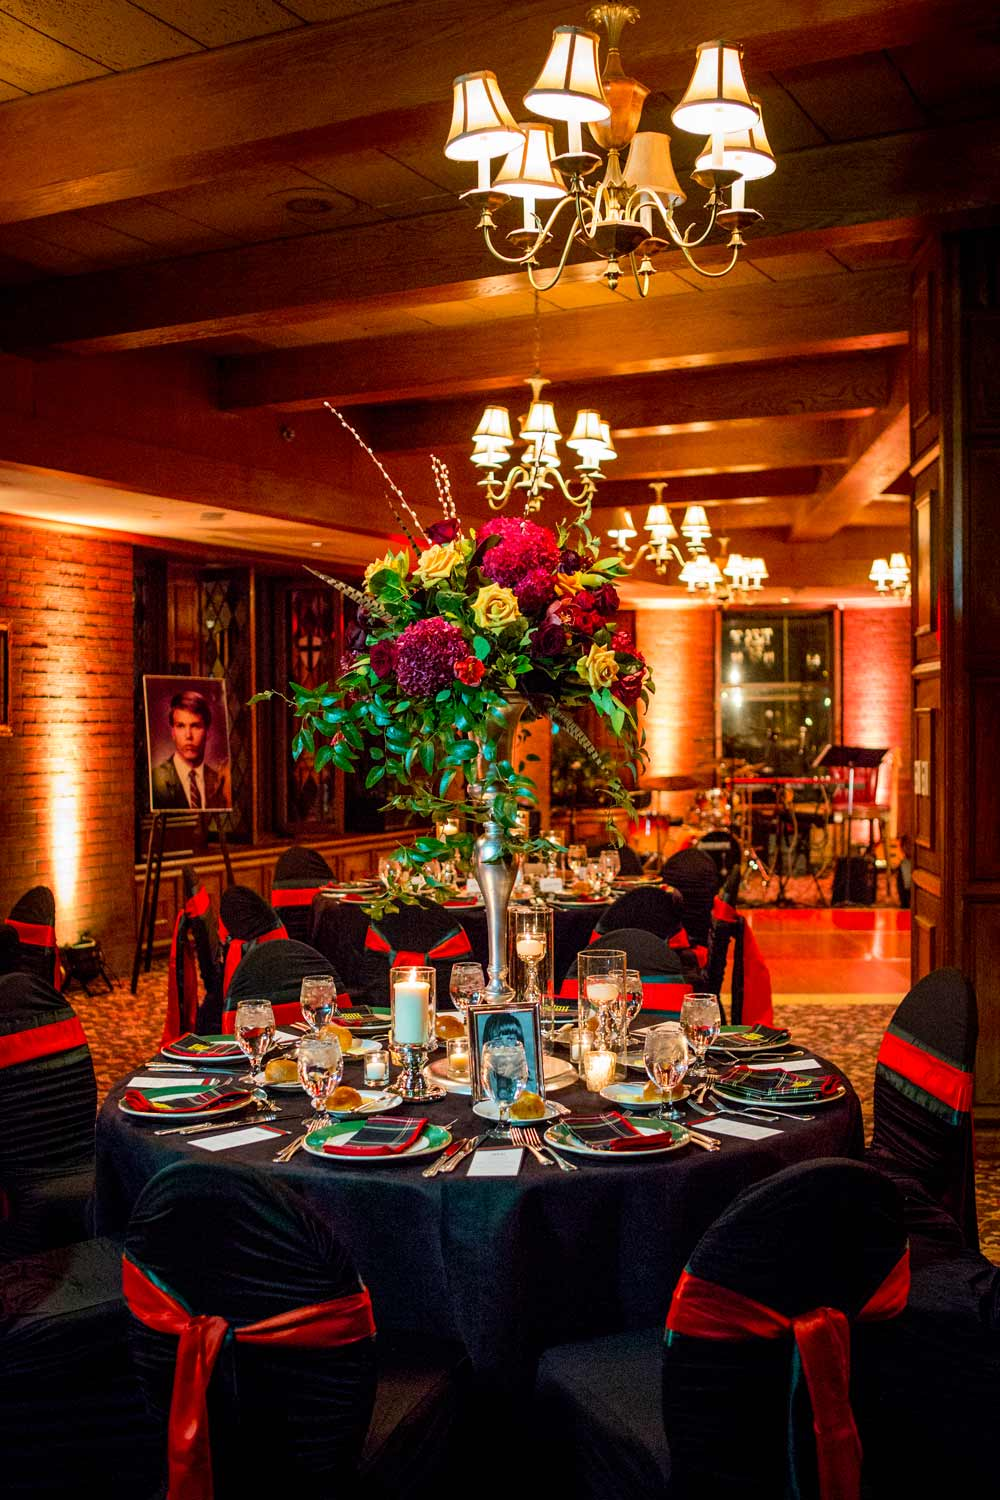 black tie 50th birthday party in Denver, Colorado | Bello & Blue Events | Wedding & Event Planning in the Mile High City